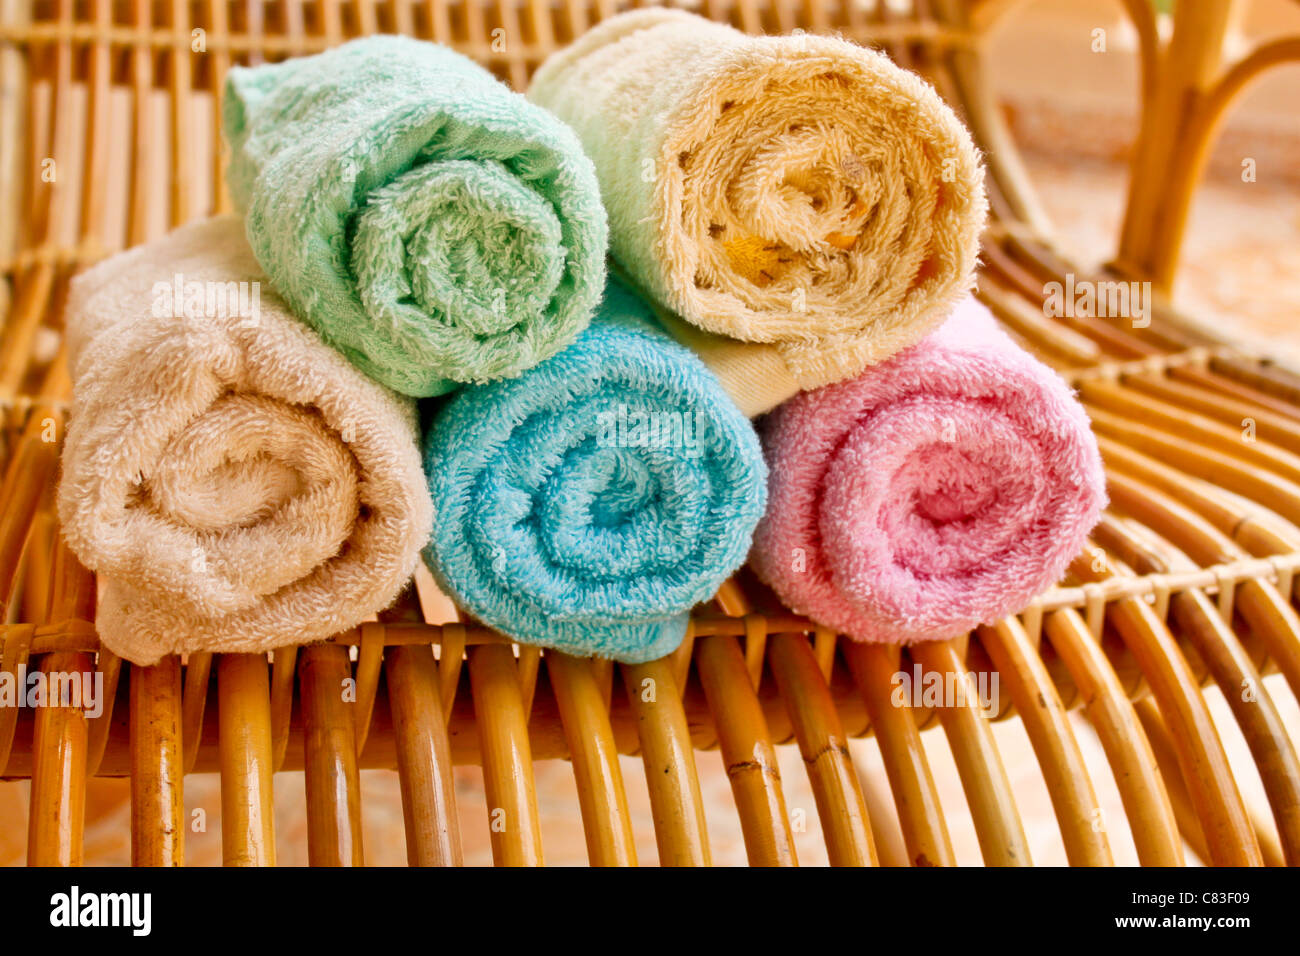 Multicolour towels rolls on wood chair - Stock Image